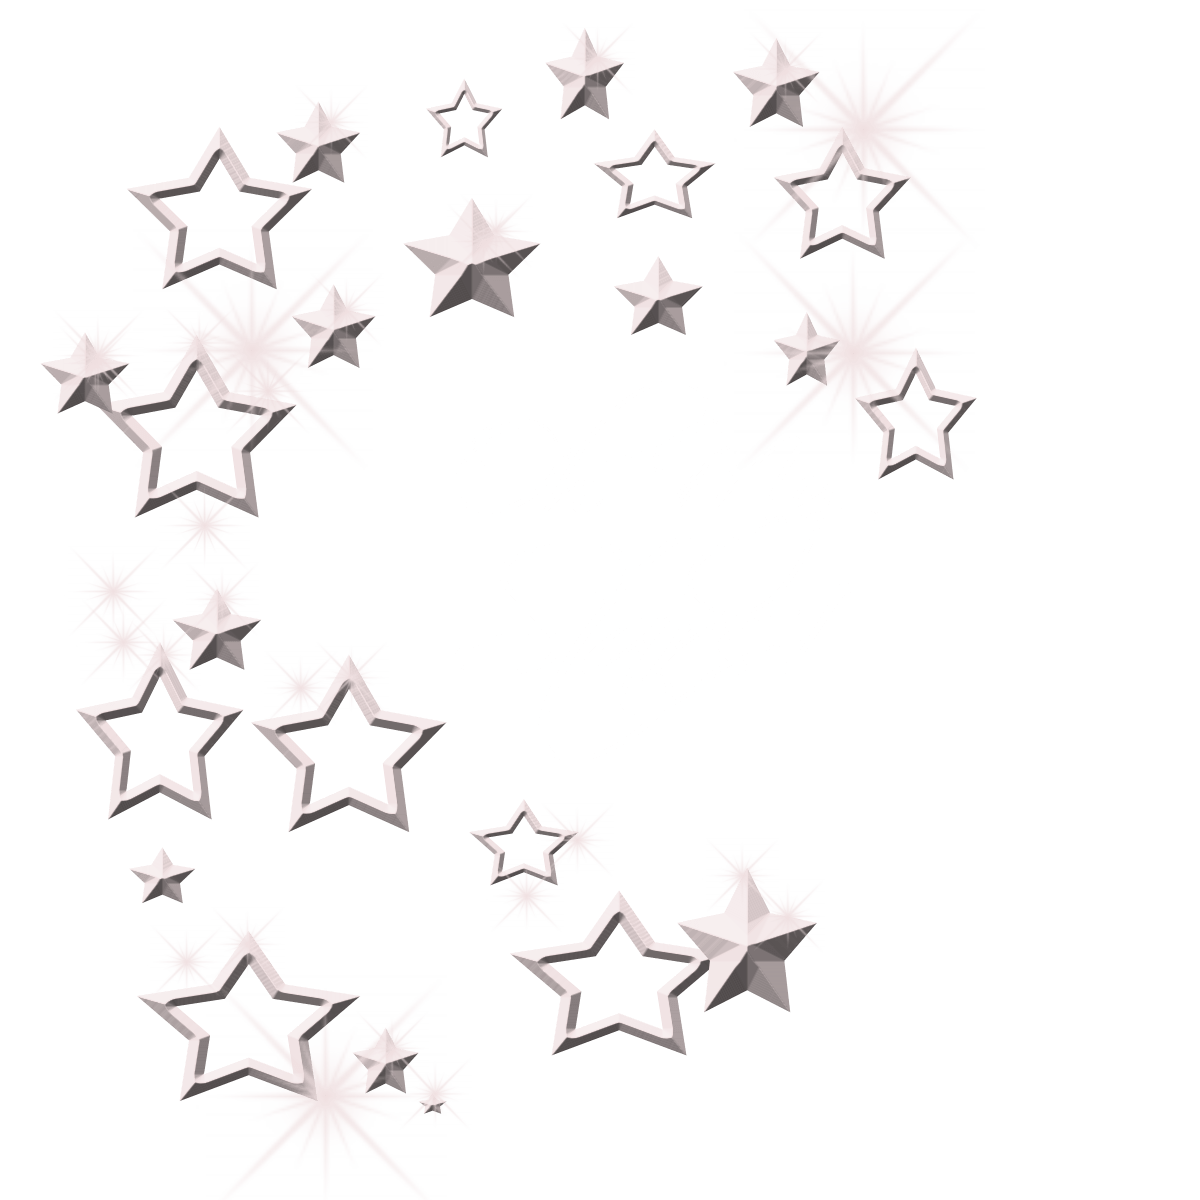 Free Free Pictures Of Stars Download Free Clip Art Free